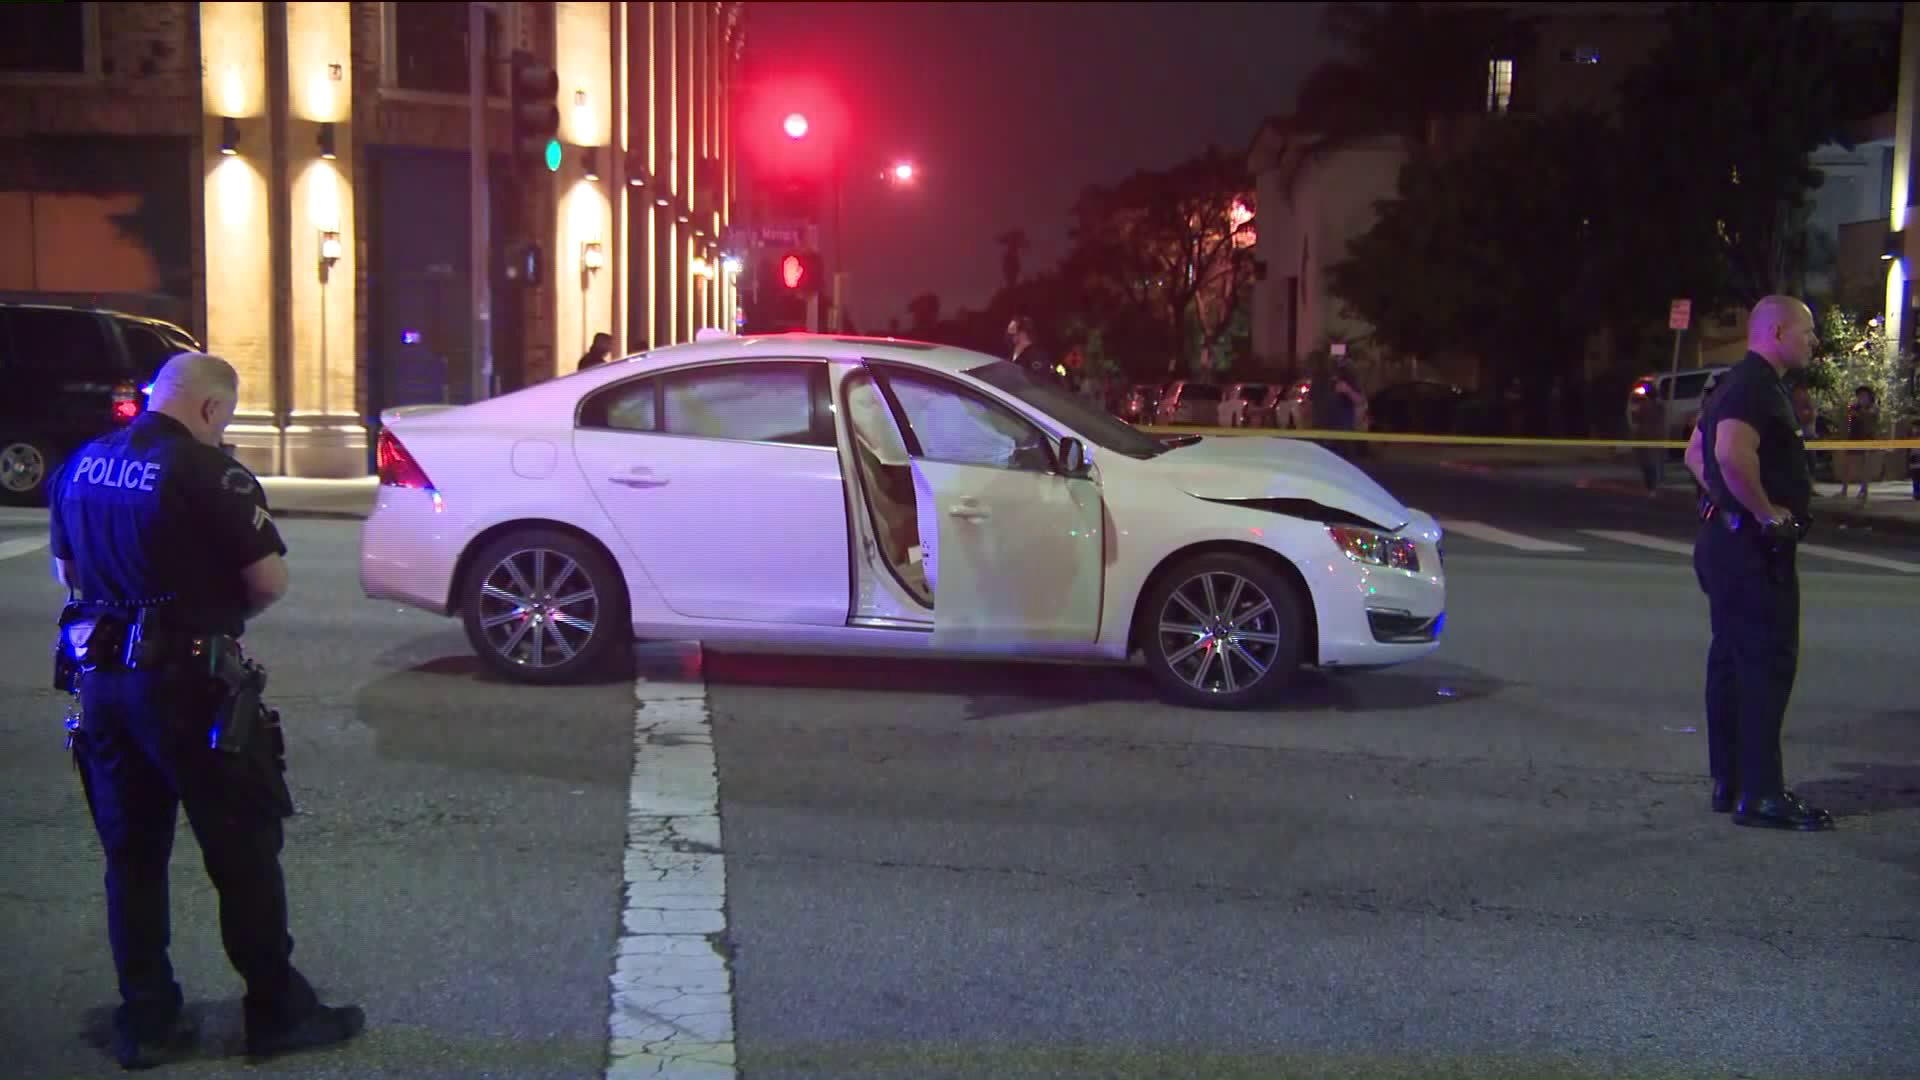 Two officers were transported to the hospital after a traffic collision in Sawtelle on July 22, 2020. (KTLA)